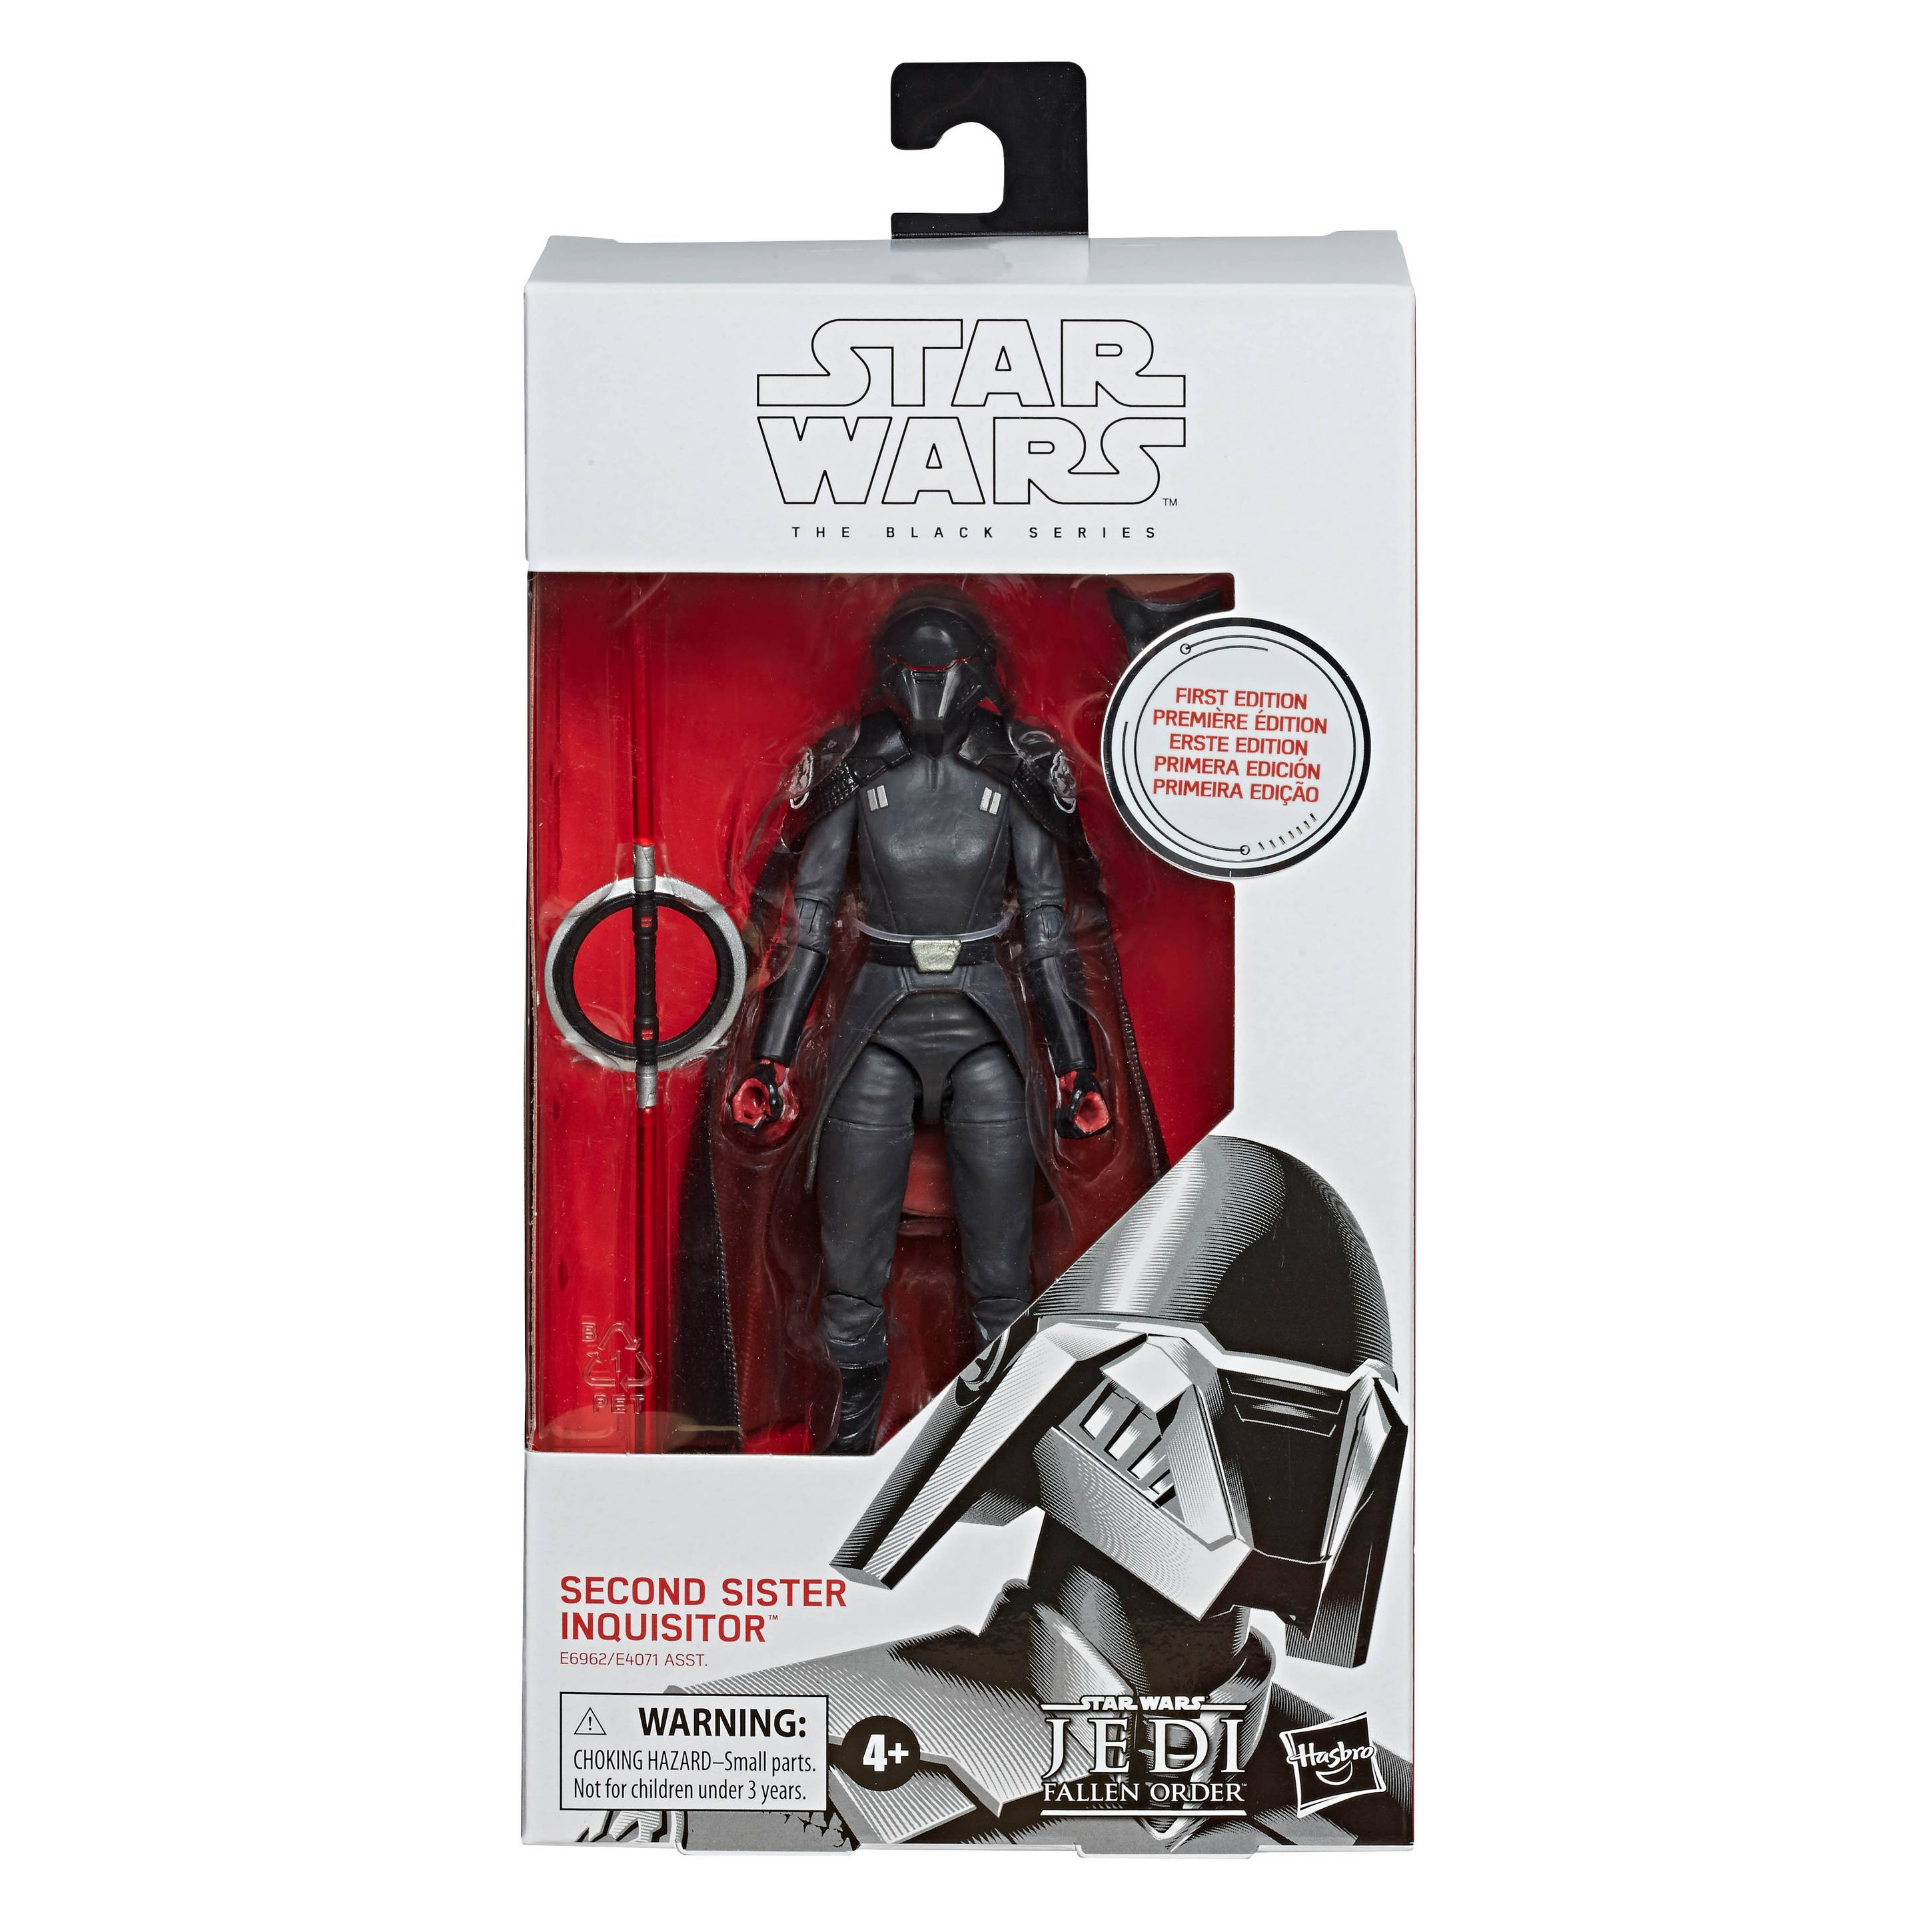 STAR-WARS-THE-BLACK-SERIES-6-INCH-SECOND-SISTER-INQUISITOR-Figure-First-Edition-pckging.jpg